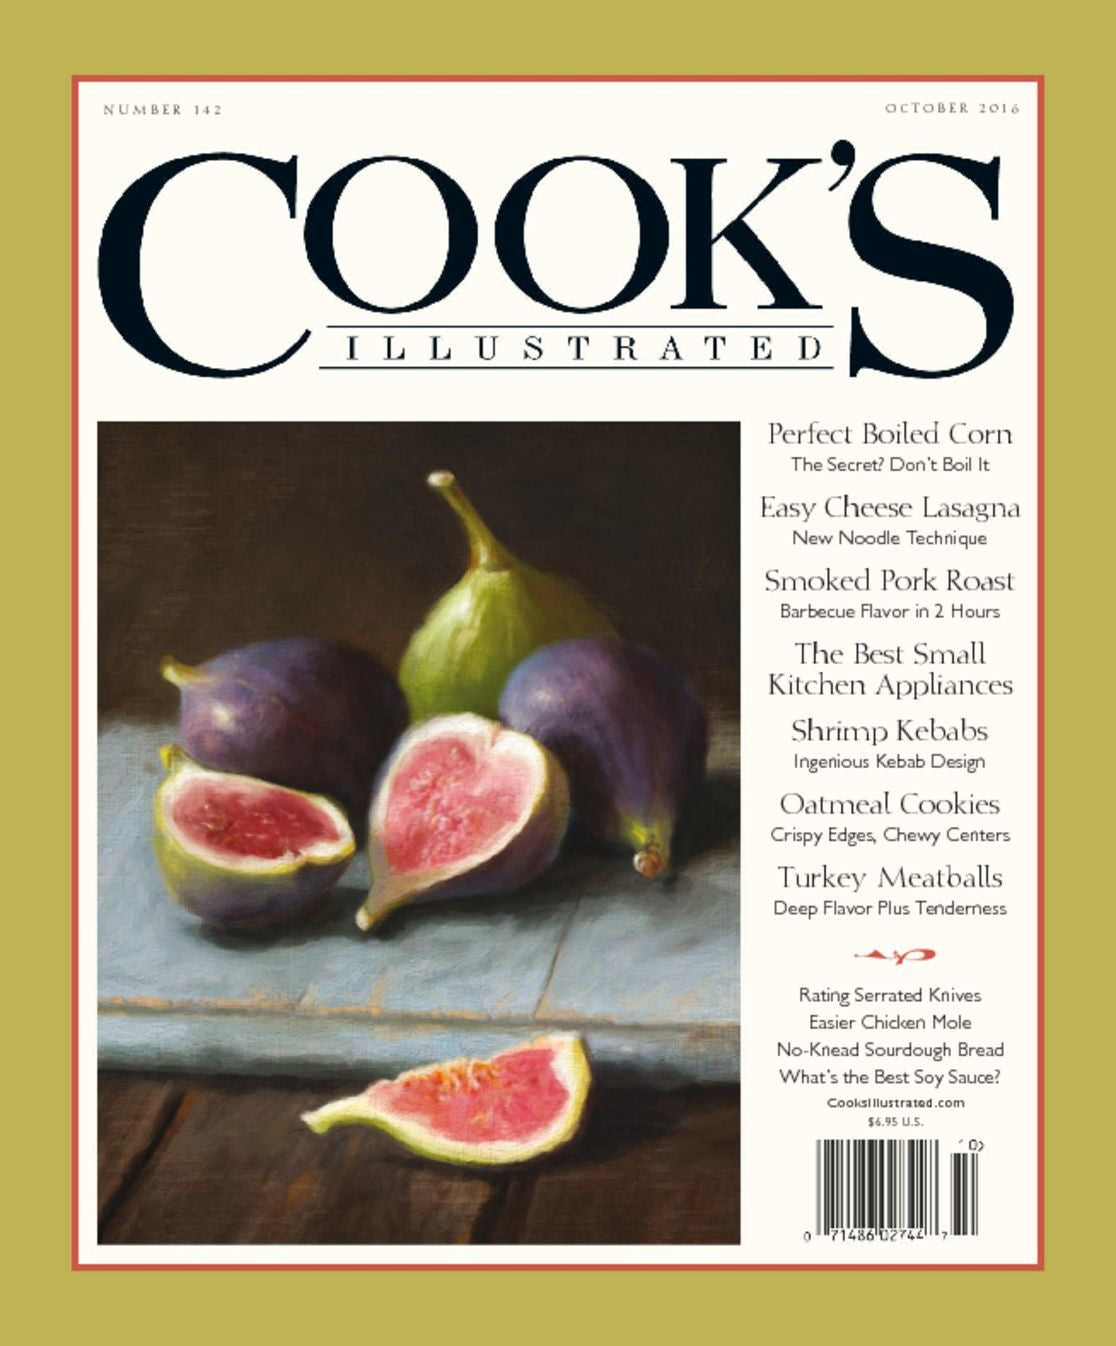 Cook's Illustrated Product Reviews - Fall 2016